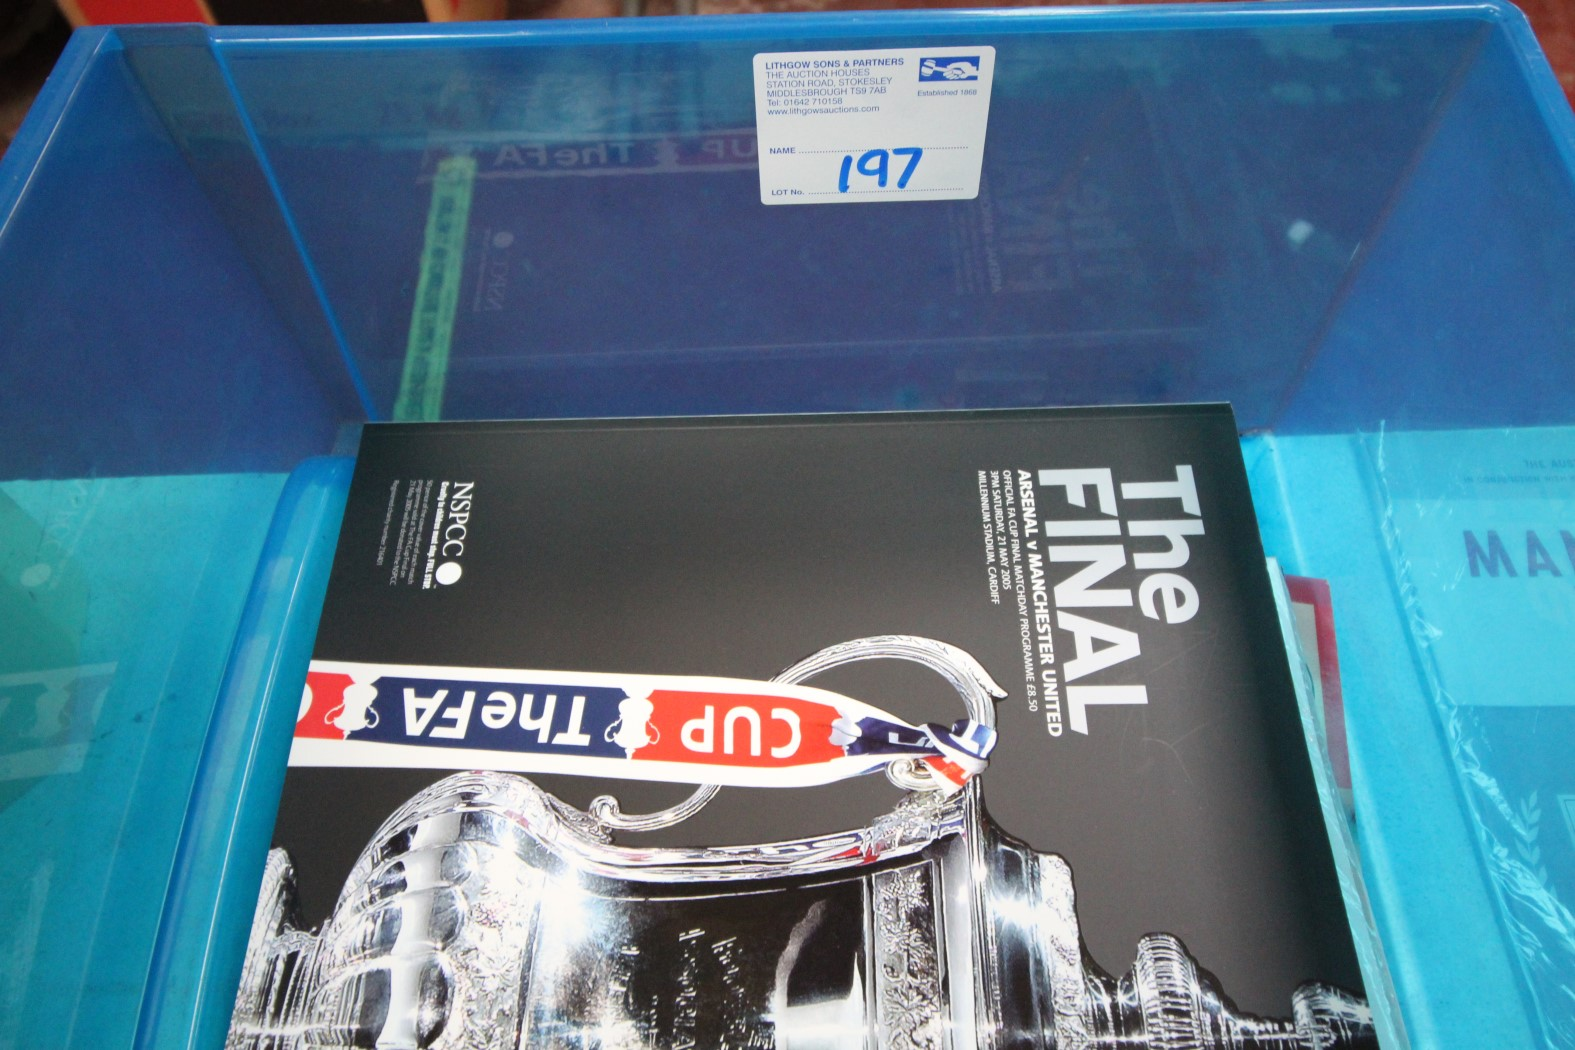 BLUE BOX AND CONTENTS OF MANCHESTER UNITED GLOSSY MAGAZINES, INCLUDING ARSENAL V. MANCHESTER